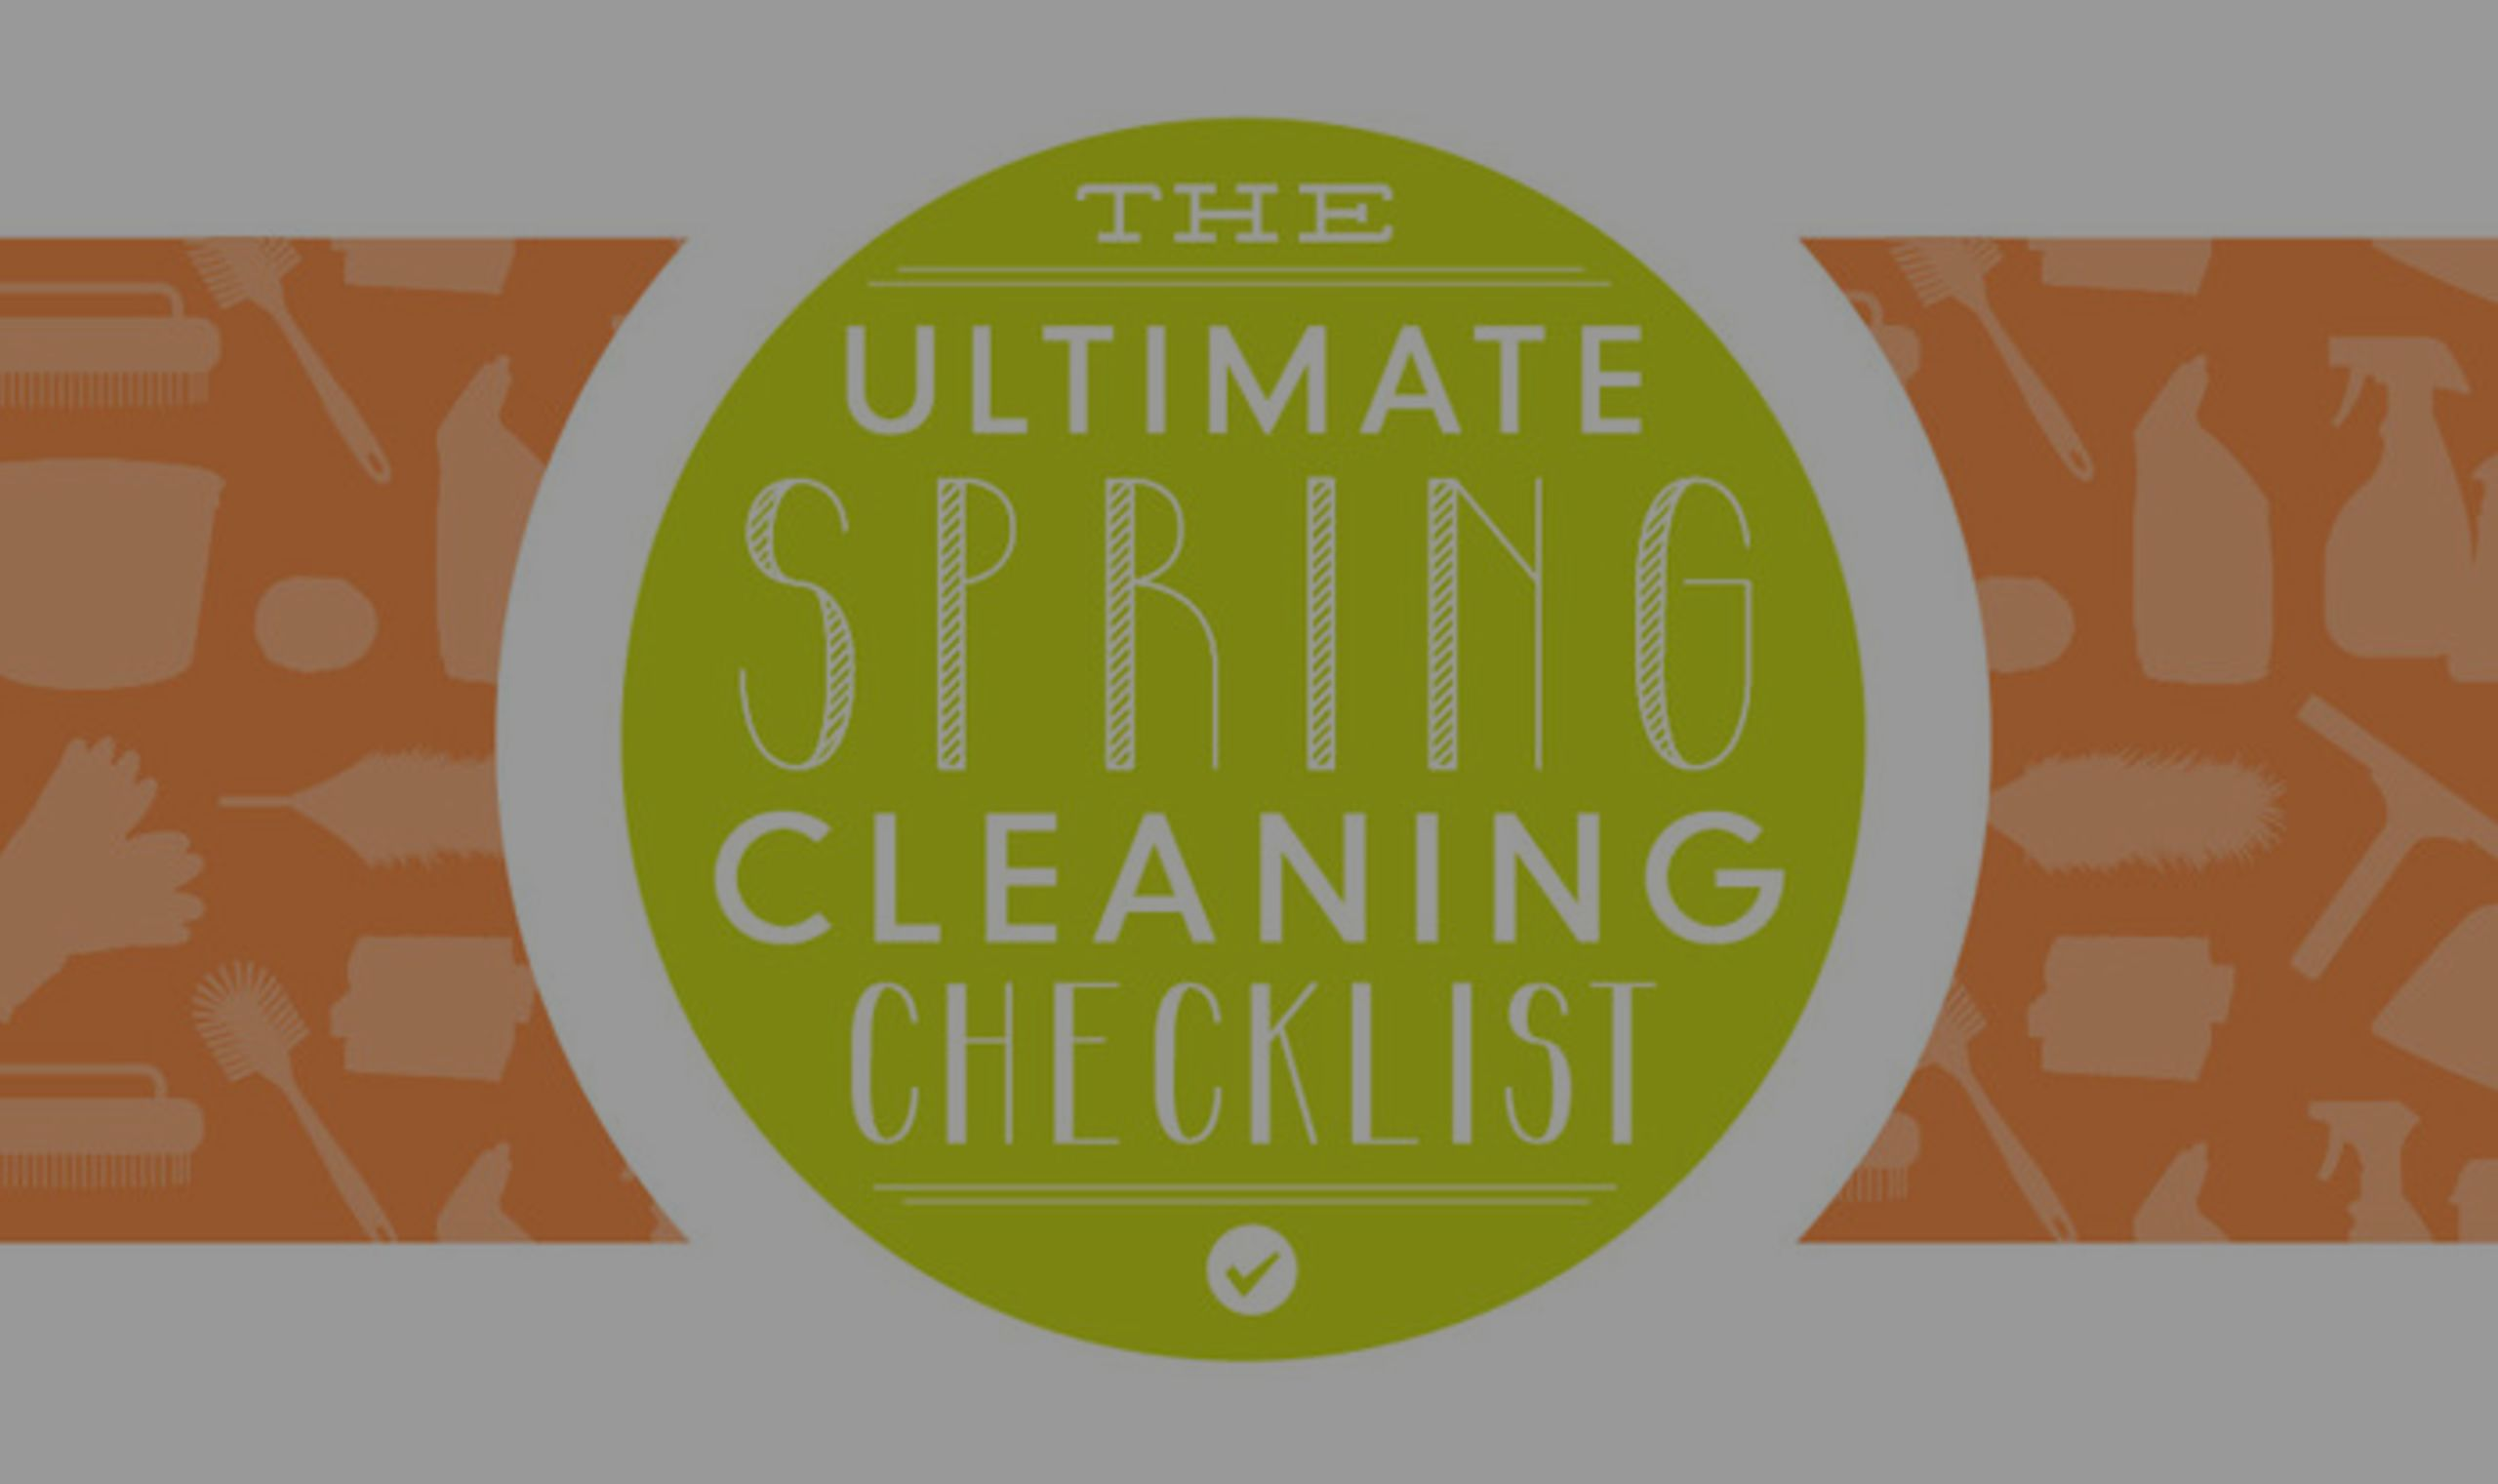 The Ultimate Spring Cleaning Checklist from BrightNest.com